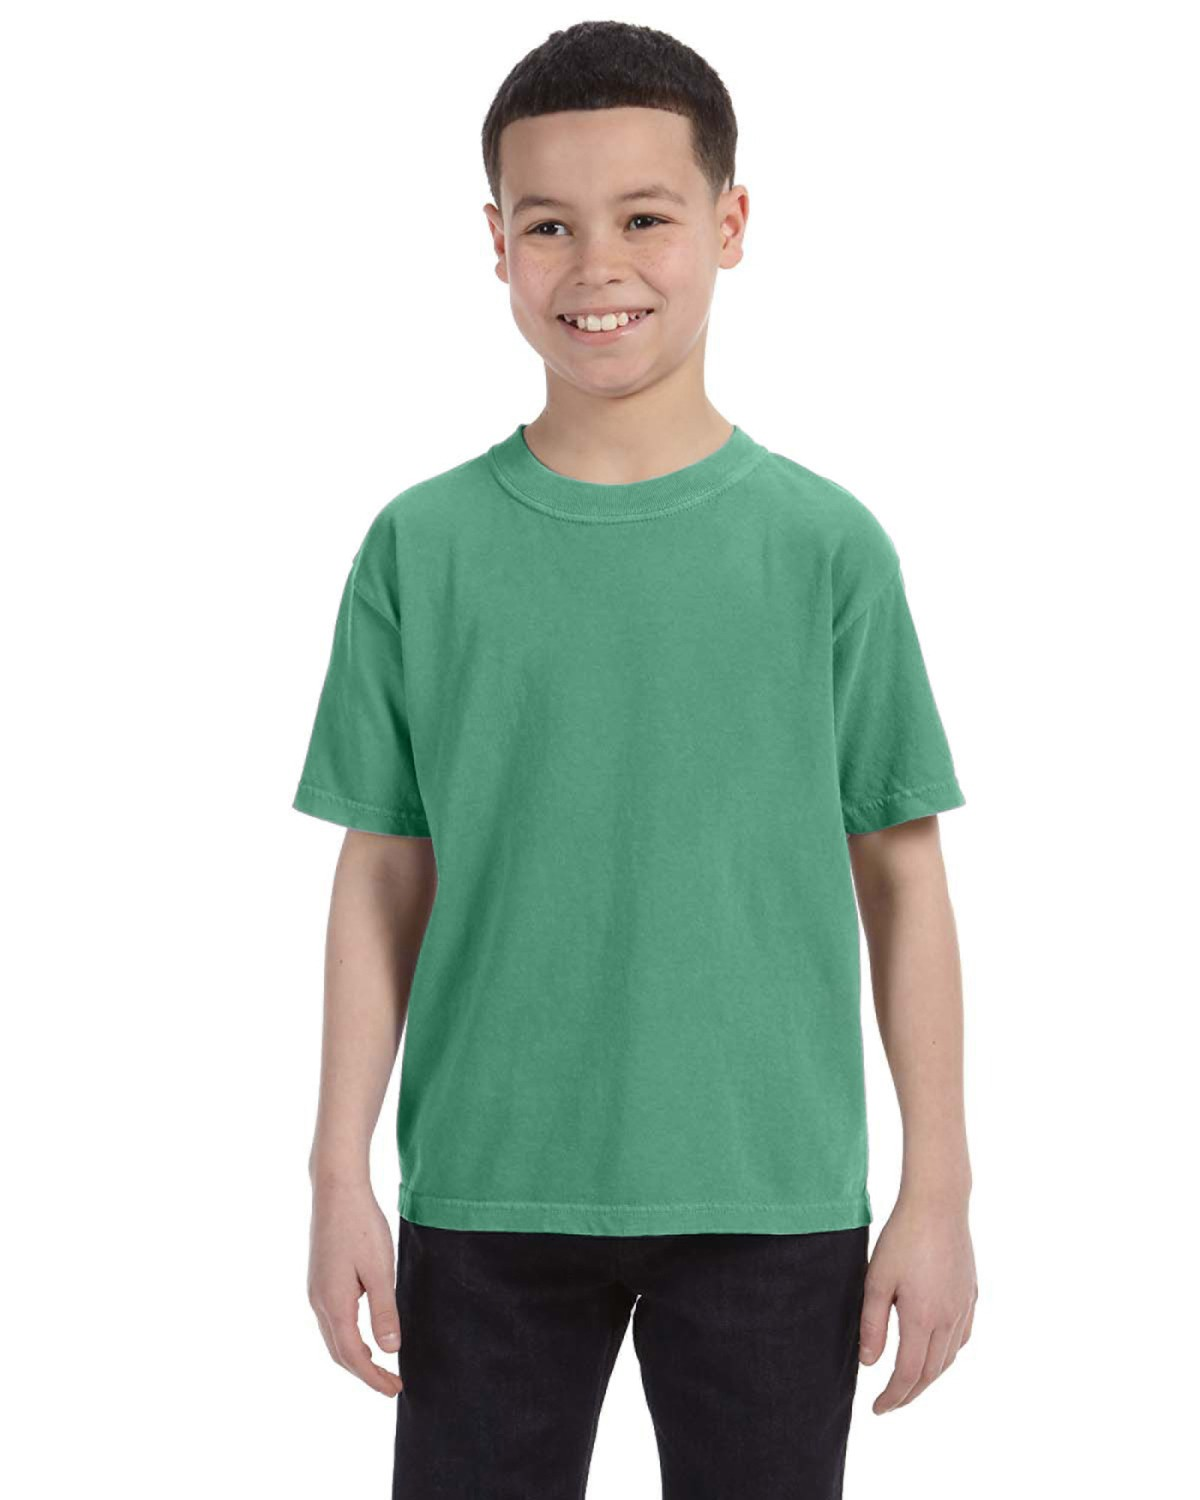 C9018 Comfort Colors ISLAND GREEN